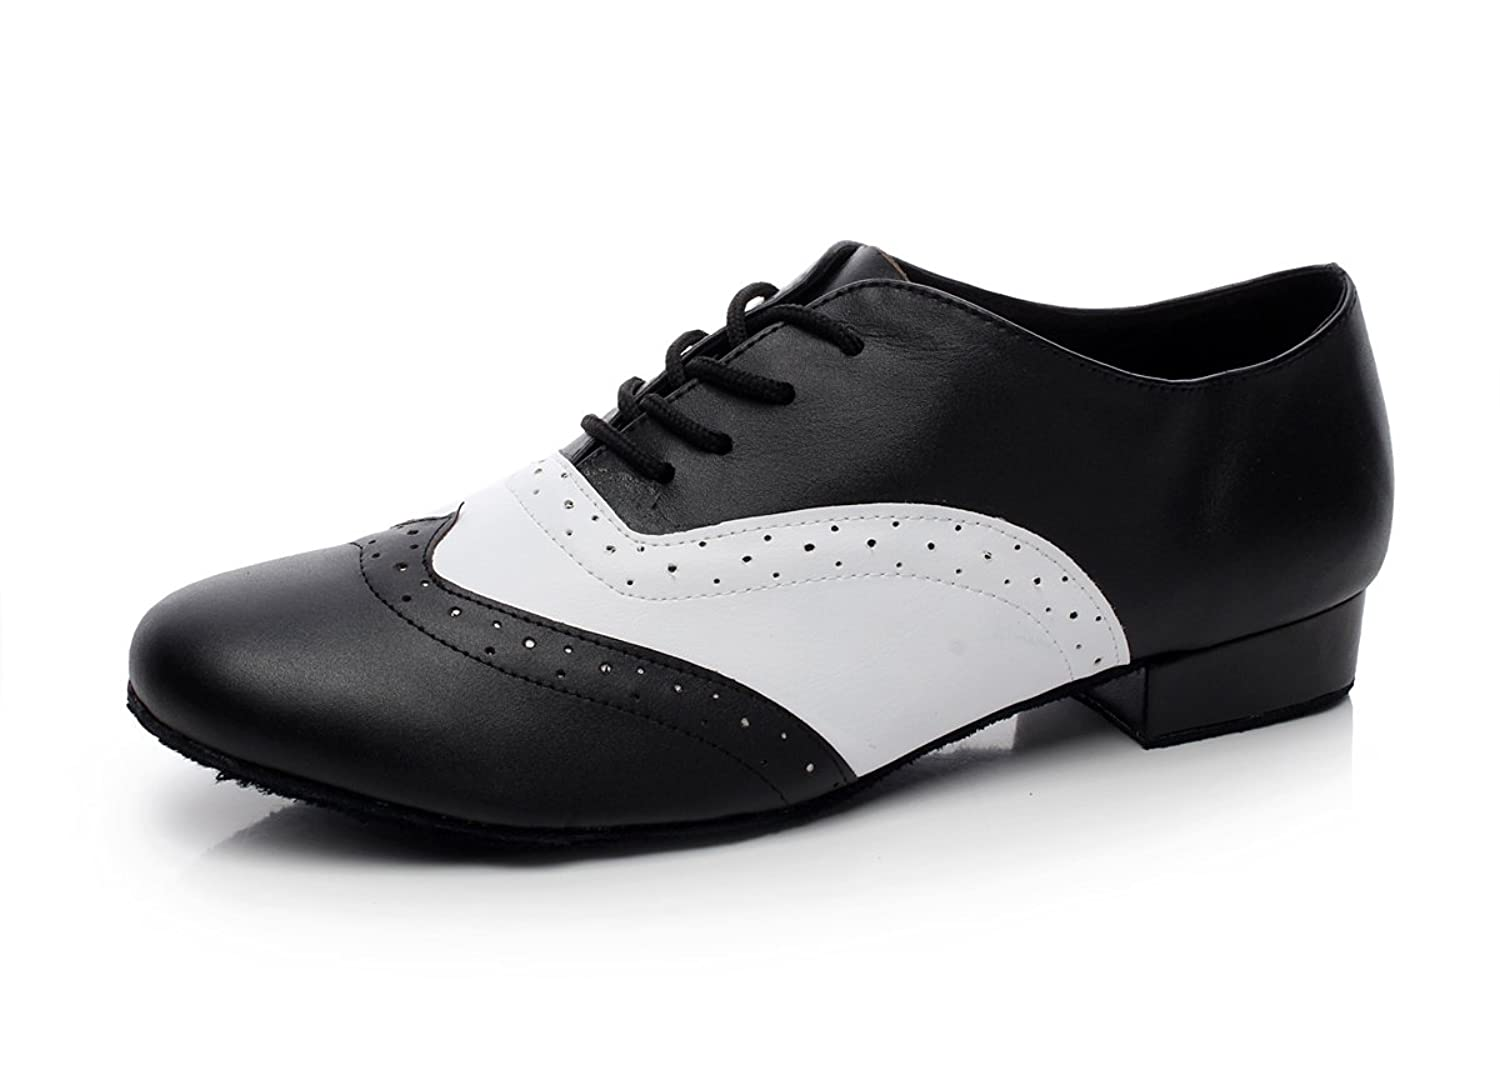 Men's Swing Dance Clothing, Vintage Dance Clothes Minishion QJ9011 Mens 1 Heel Leather Modern Salsa Tango Ballroom Latin Dance Shoes $42.99 AT vintagedancer.com